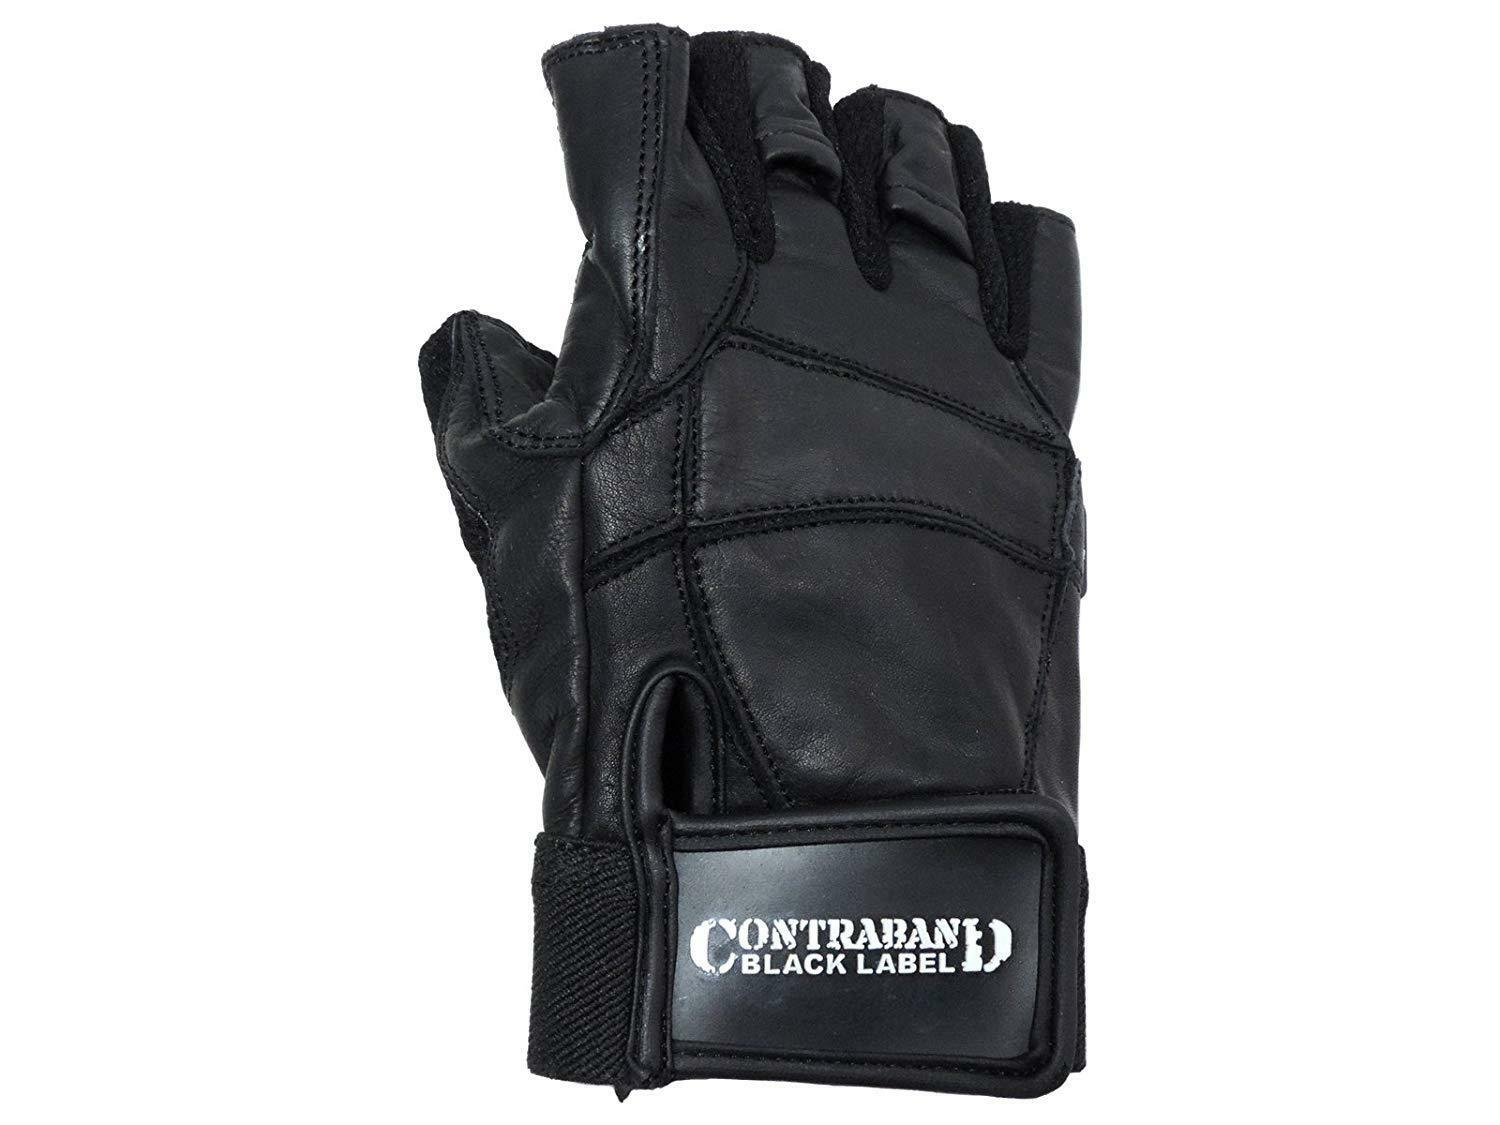 Contraband Black Label 5890 Premium Leather Gloves w Rubber XTREME Traction Pads